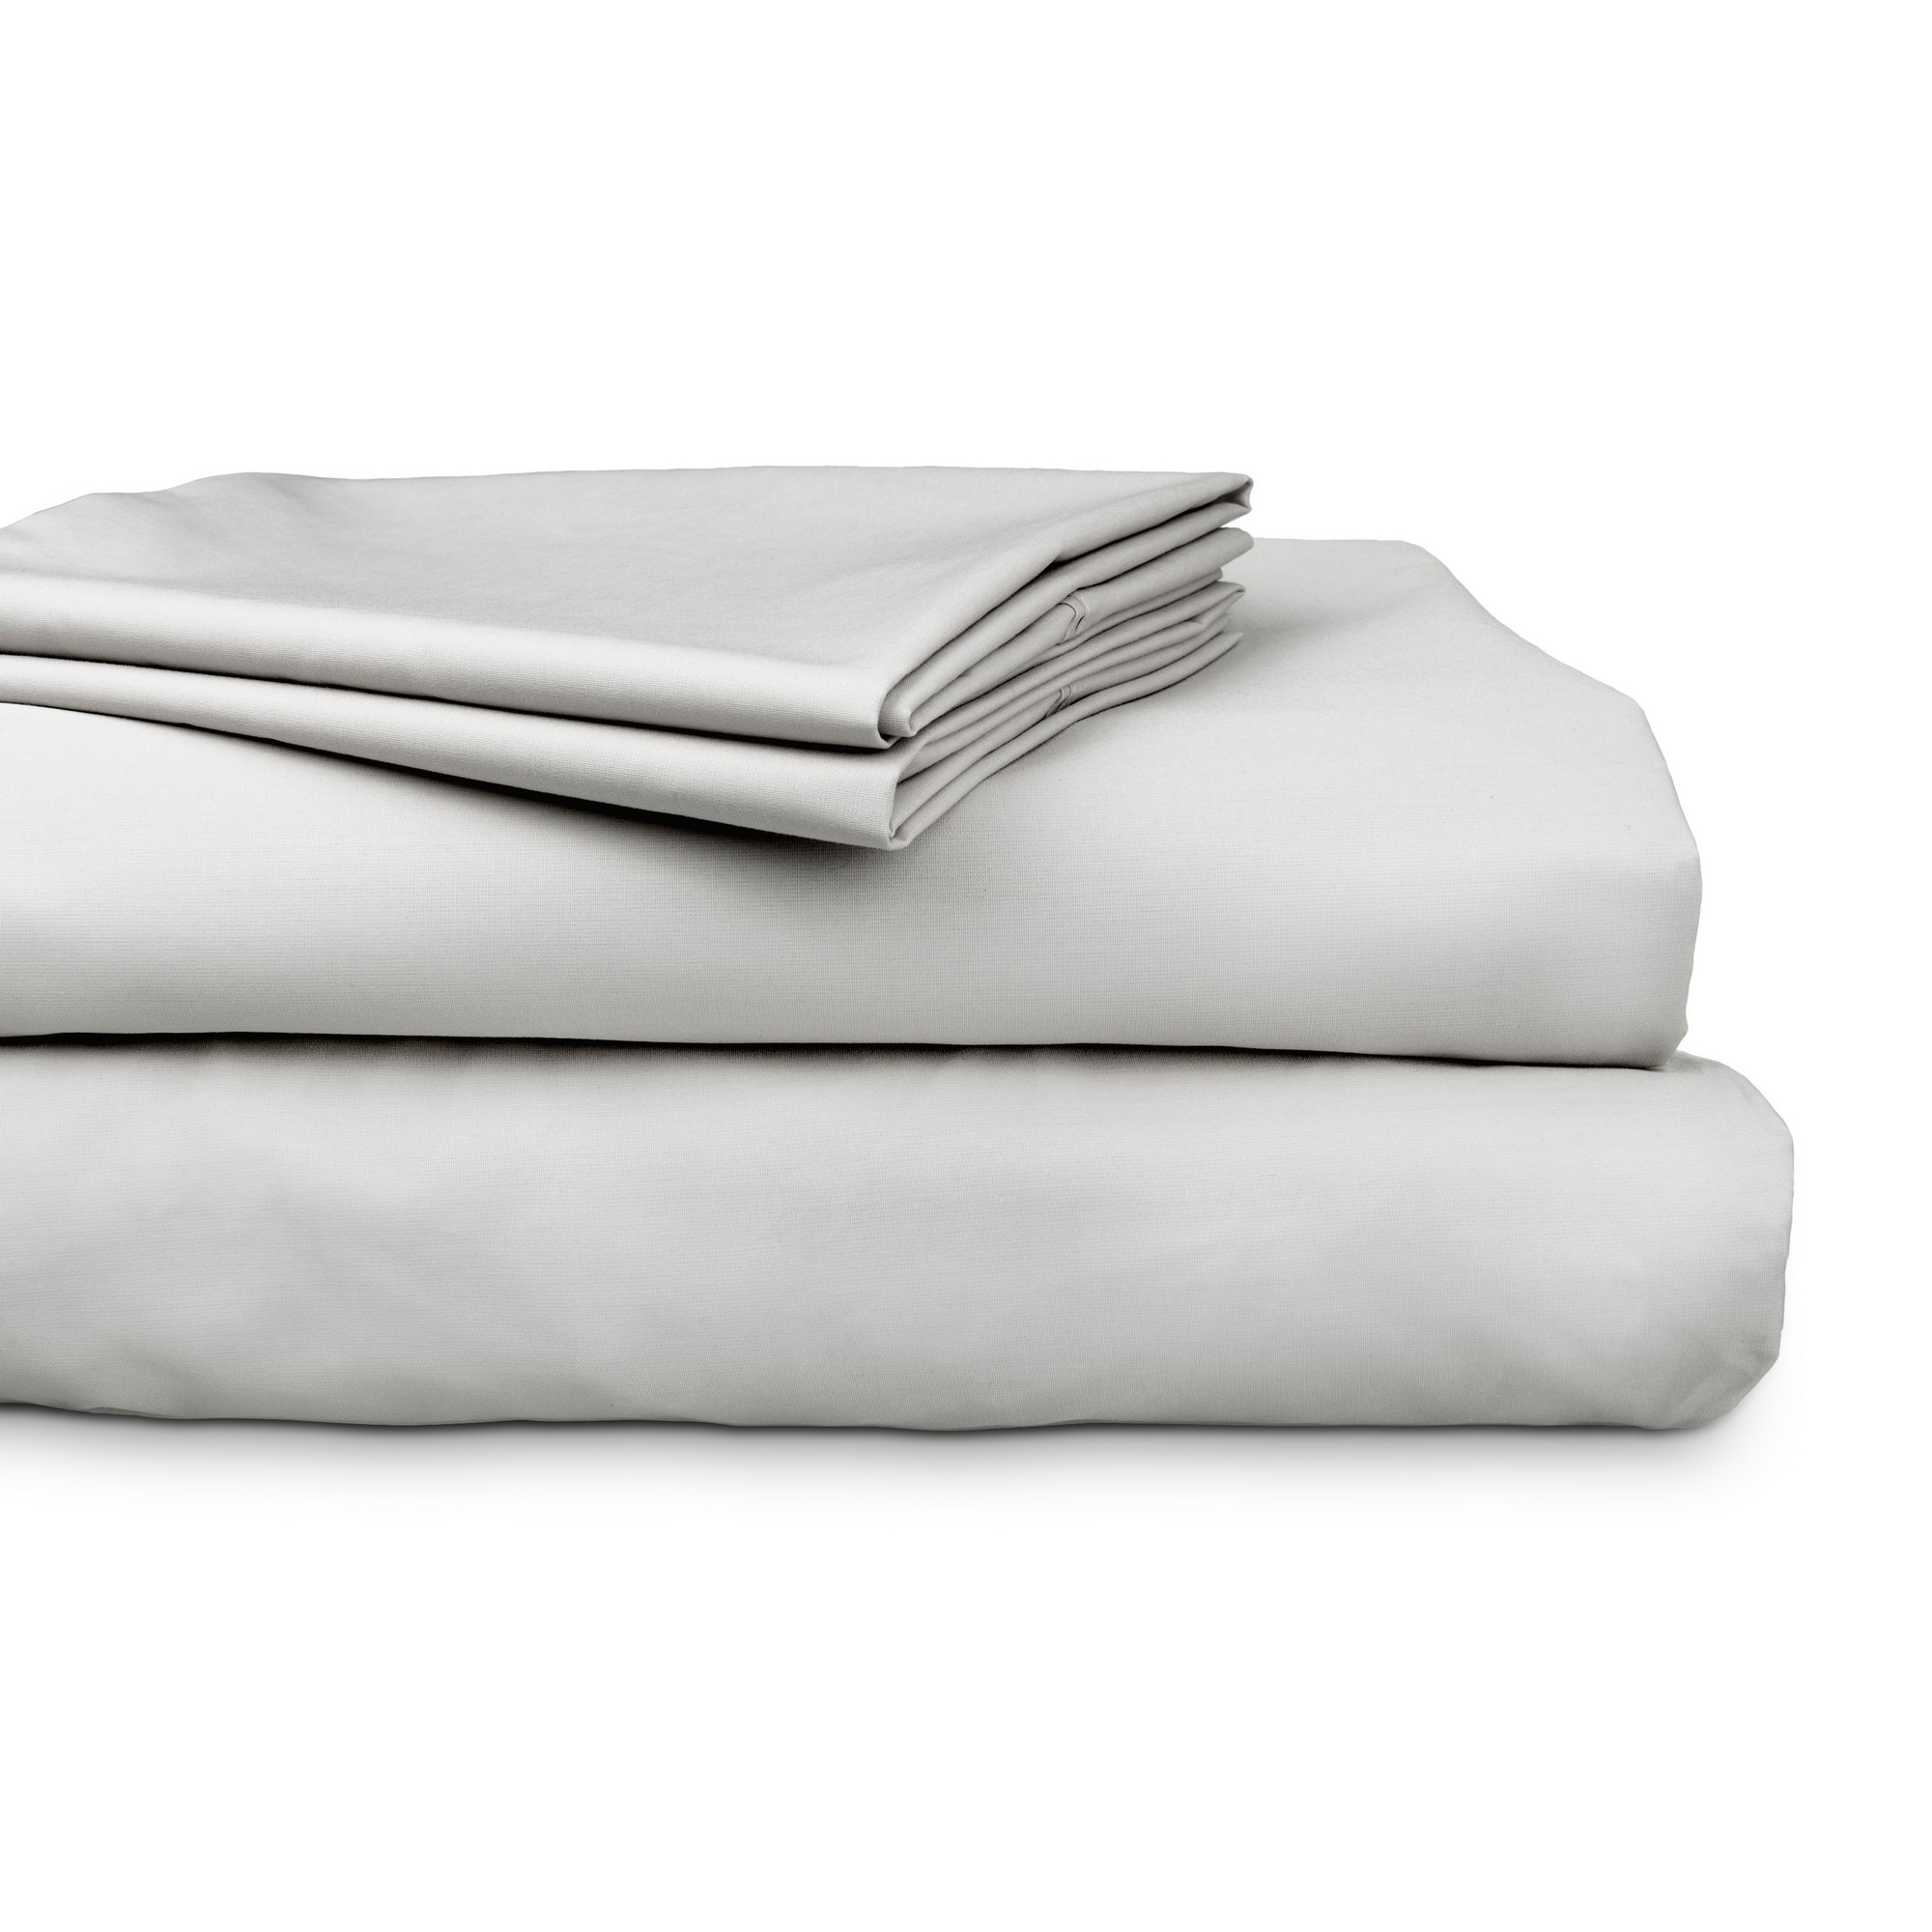 Ajee 4 Piece 300TC Cotton Sheet Set, Double, Silver